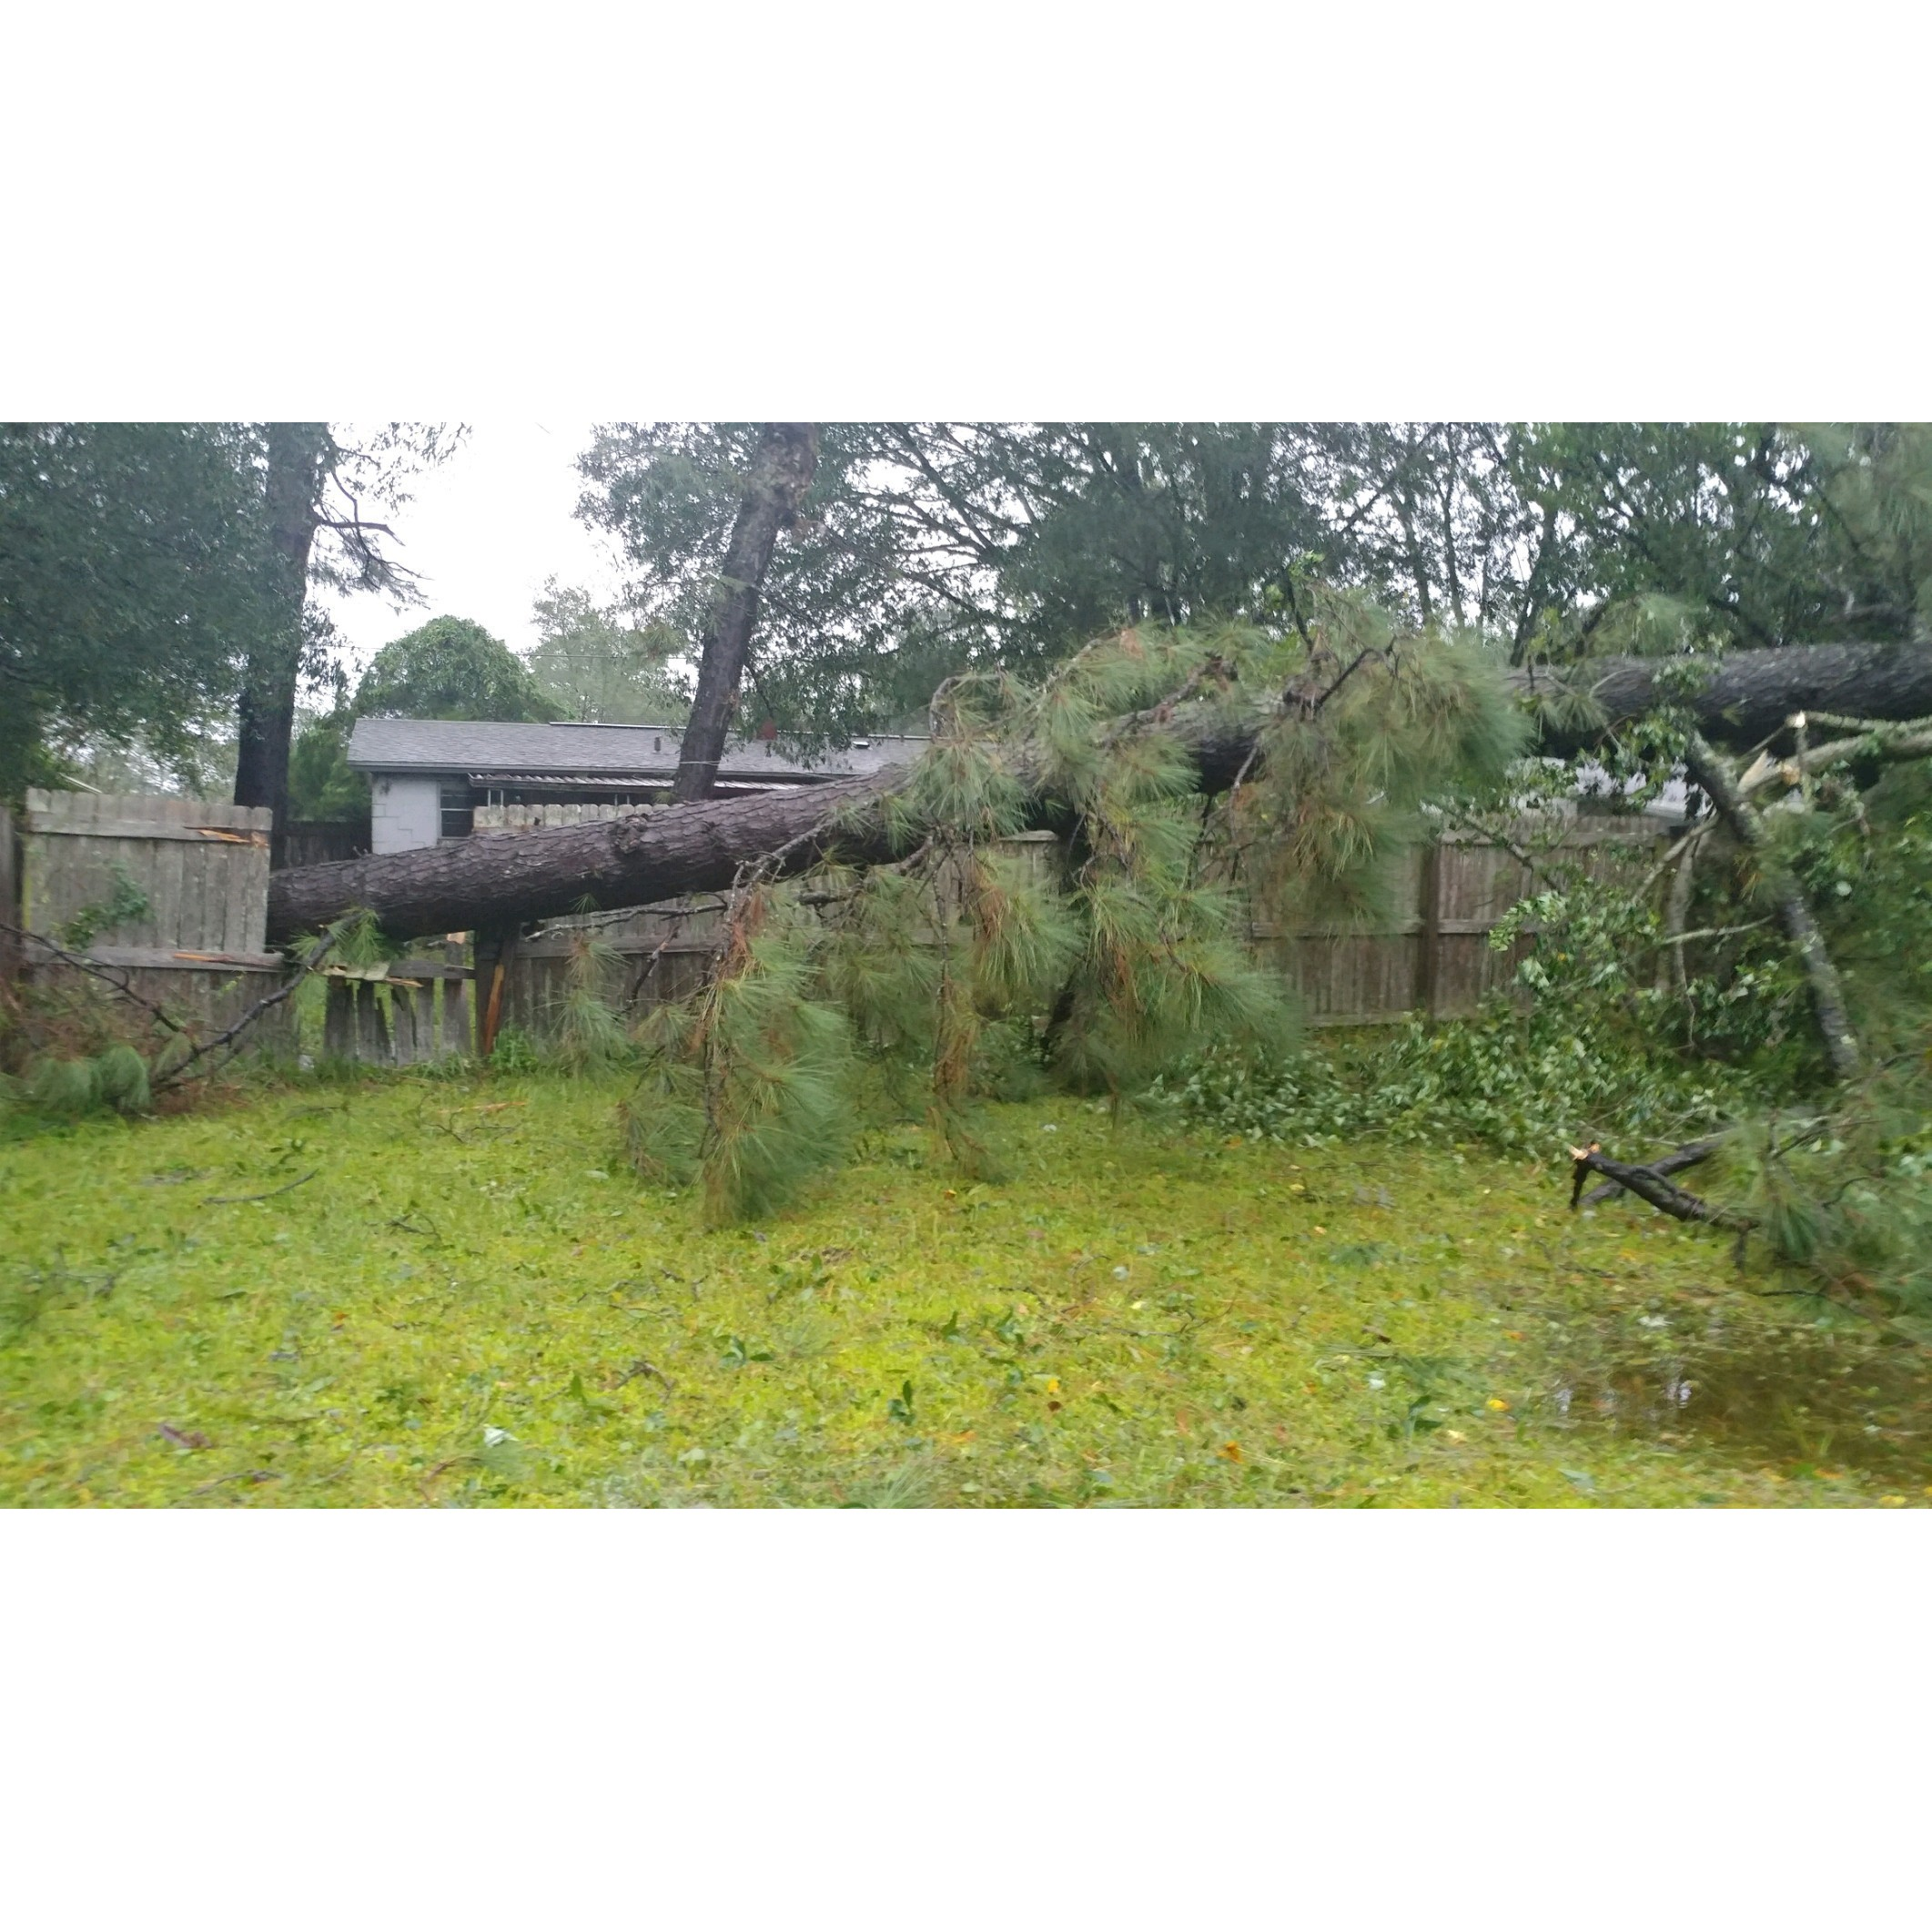 The Lawn Rangers Tree Removal and Lawn Service